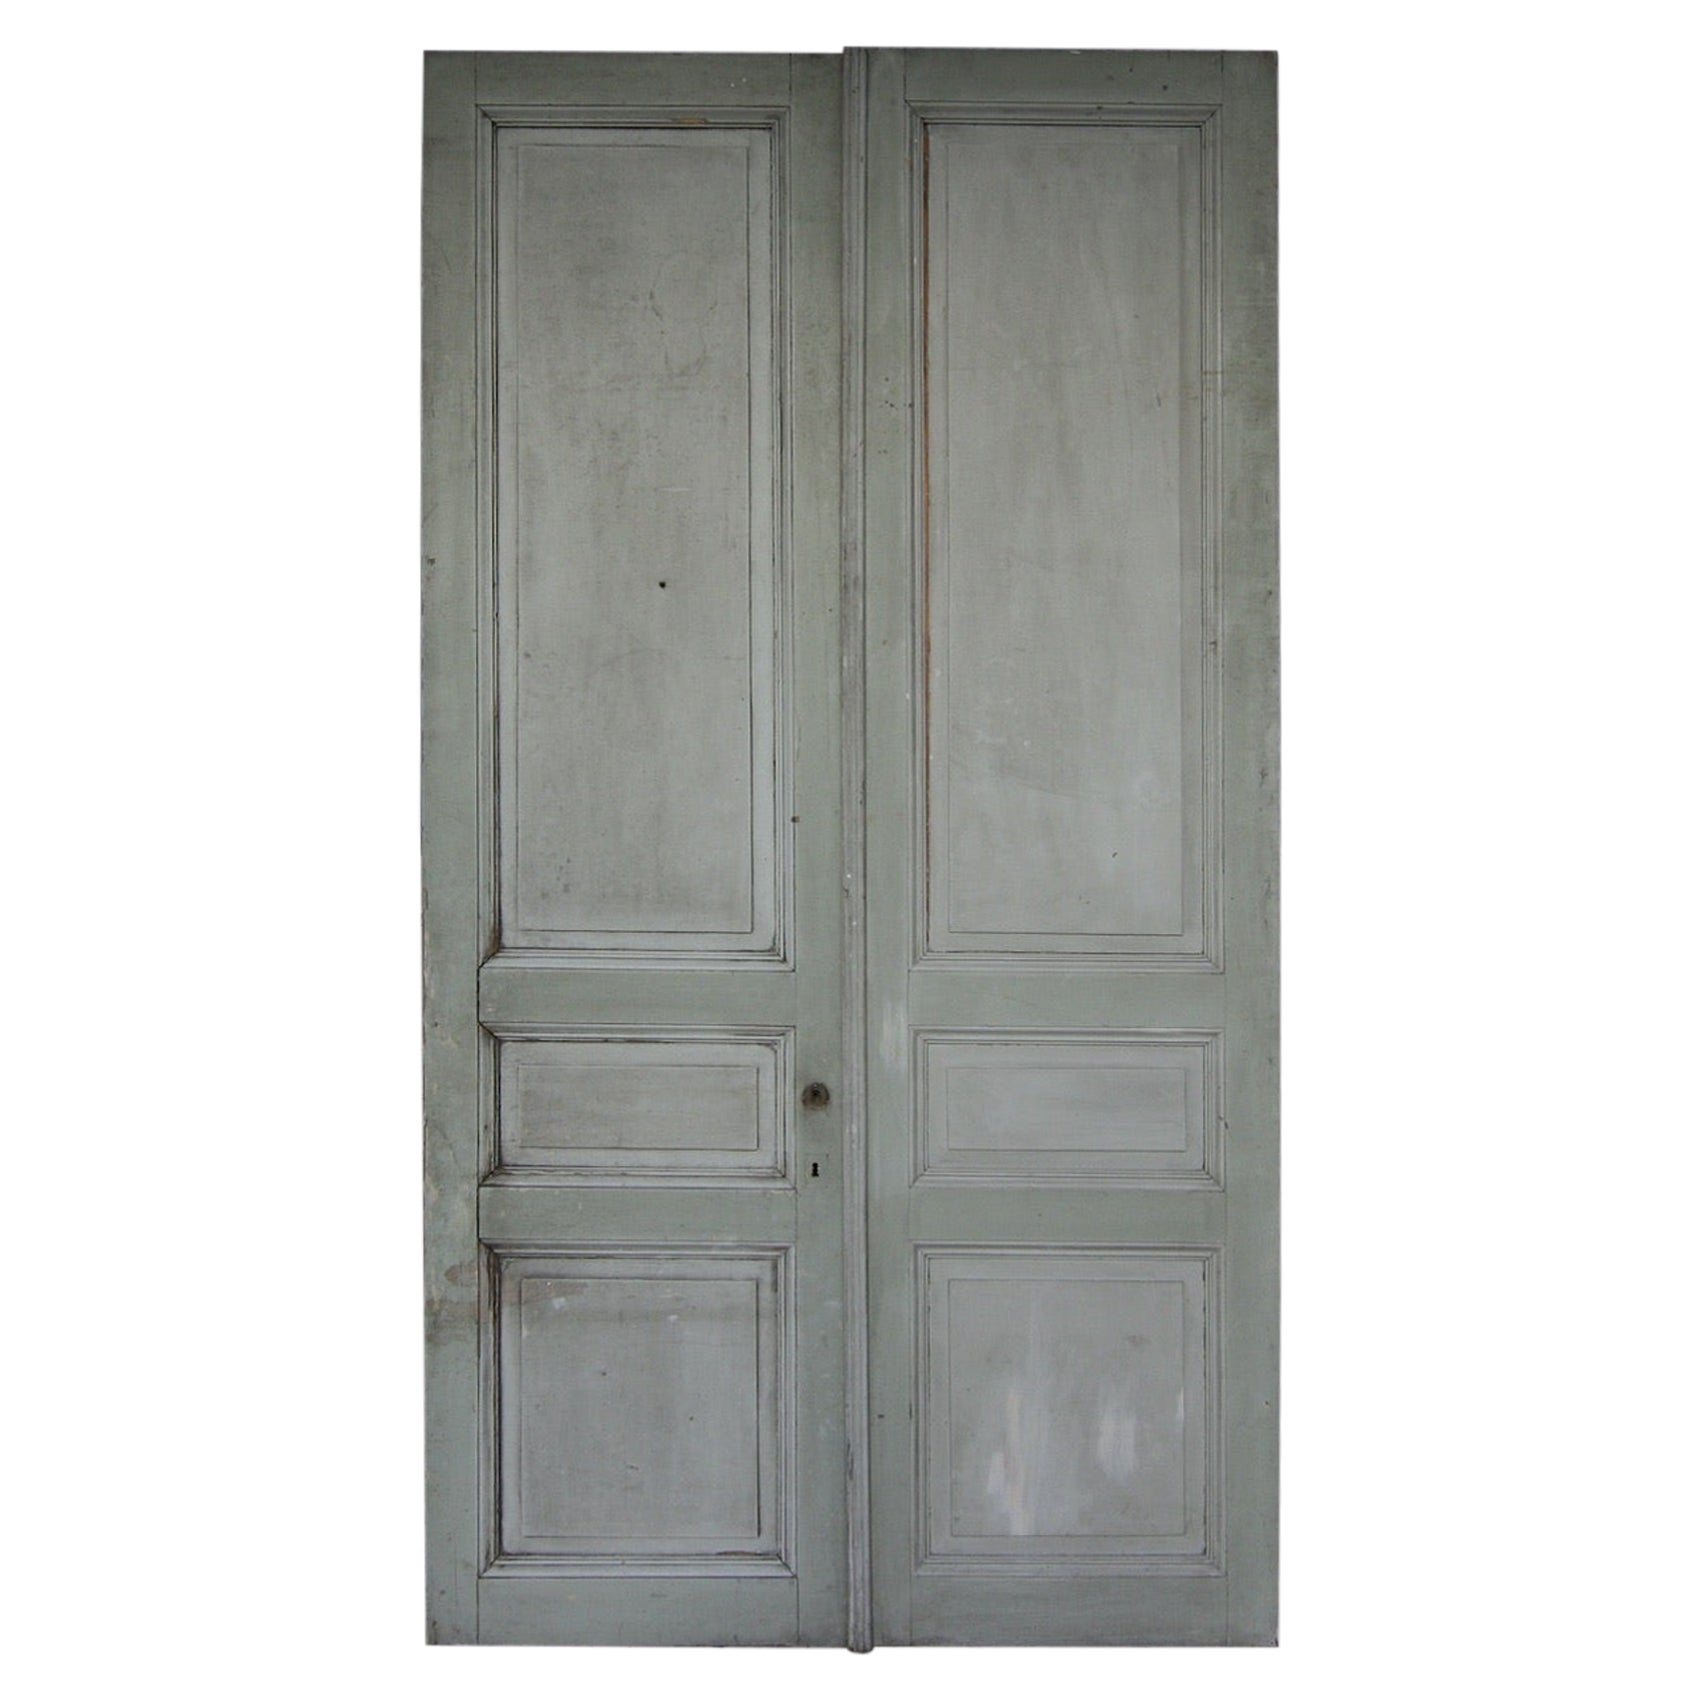 Late 19th Century French Double Door